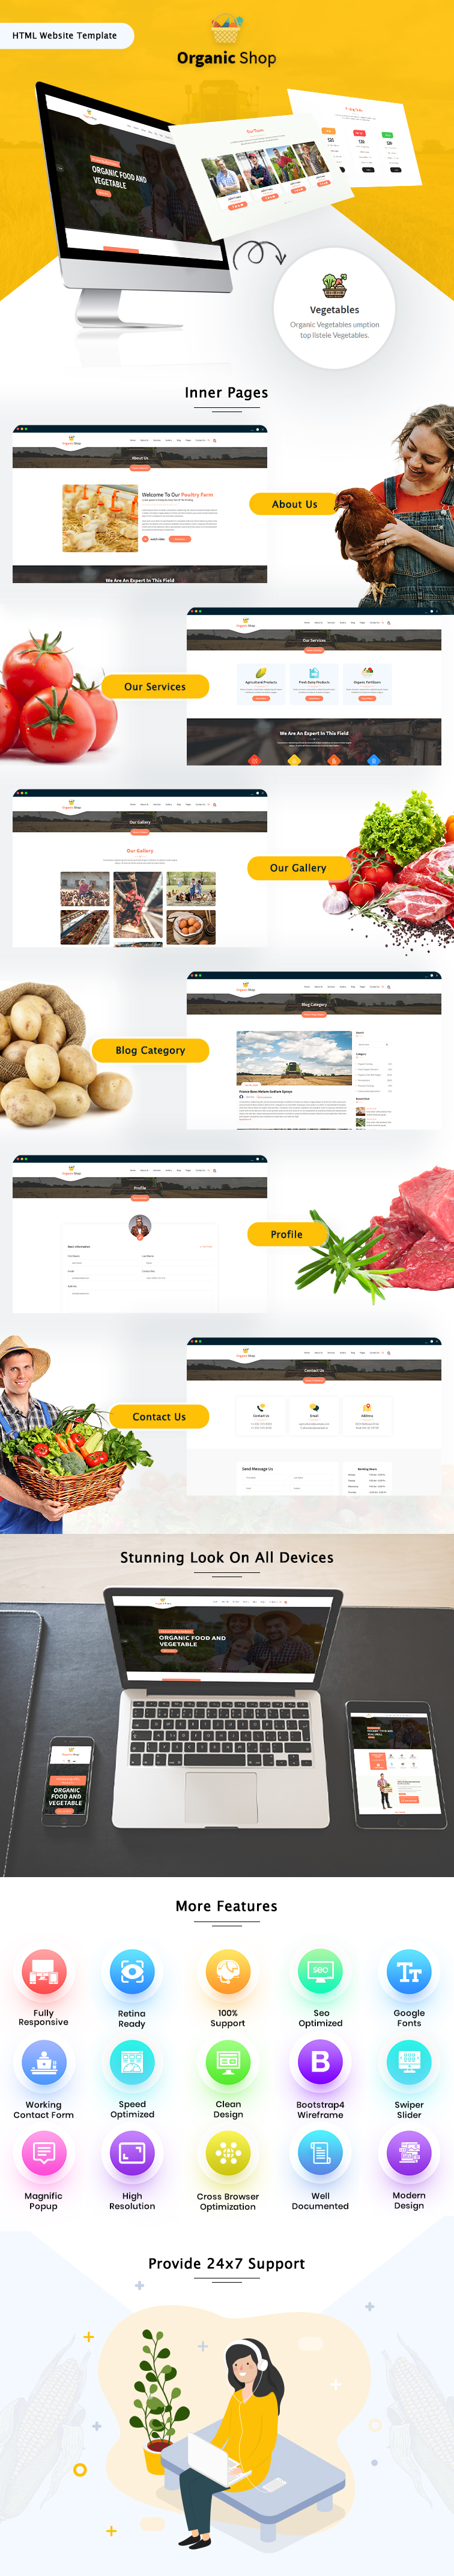 Organic Shop HTML Website Template